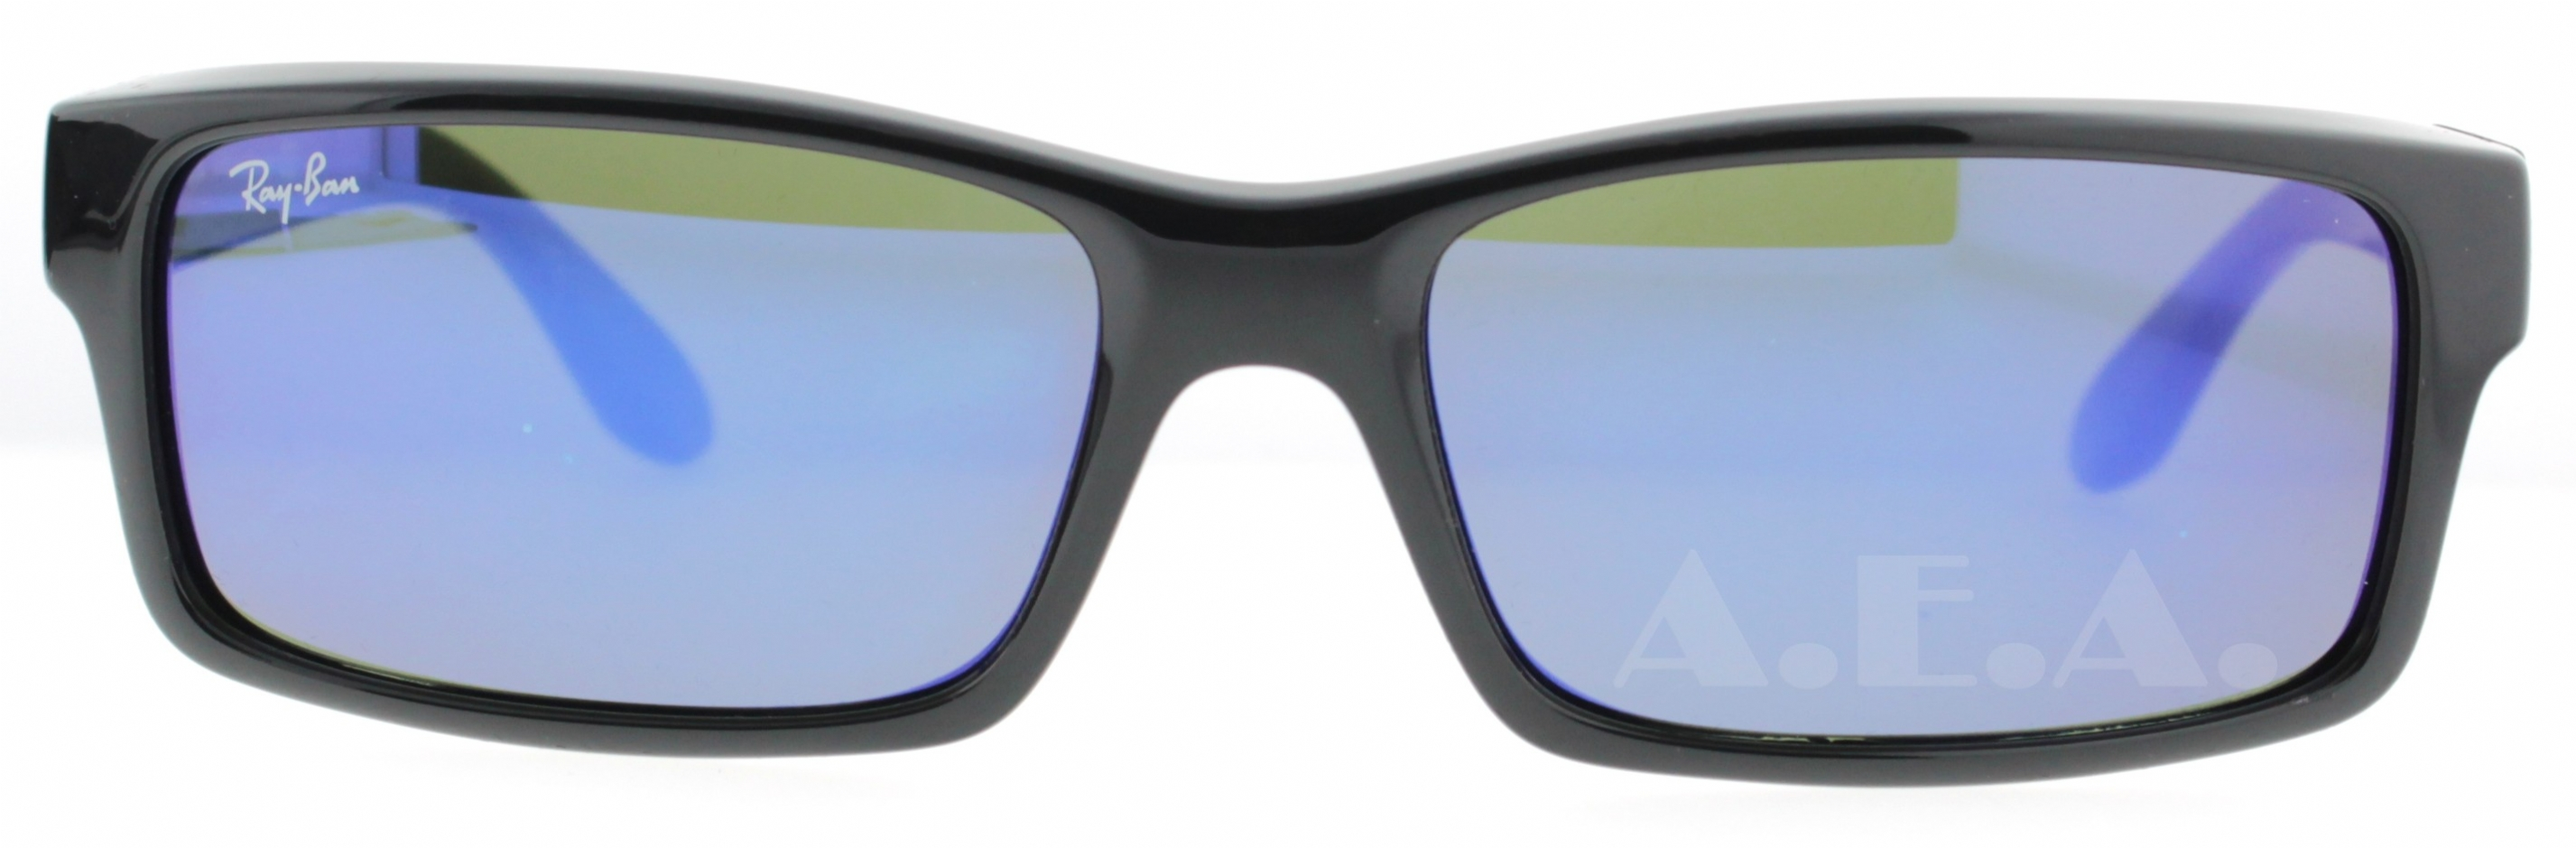 0e066e9e6f Ray Ban Rb4151 Review « Heritage Malta